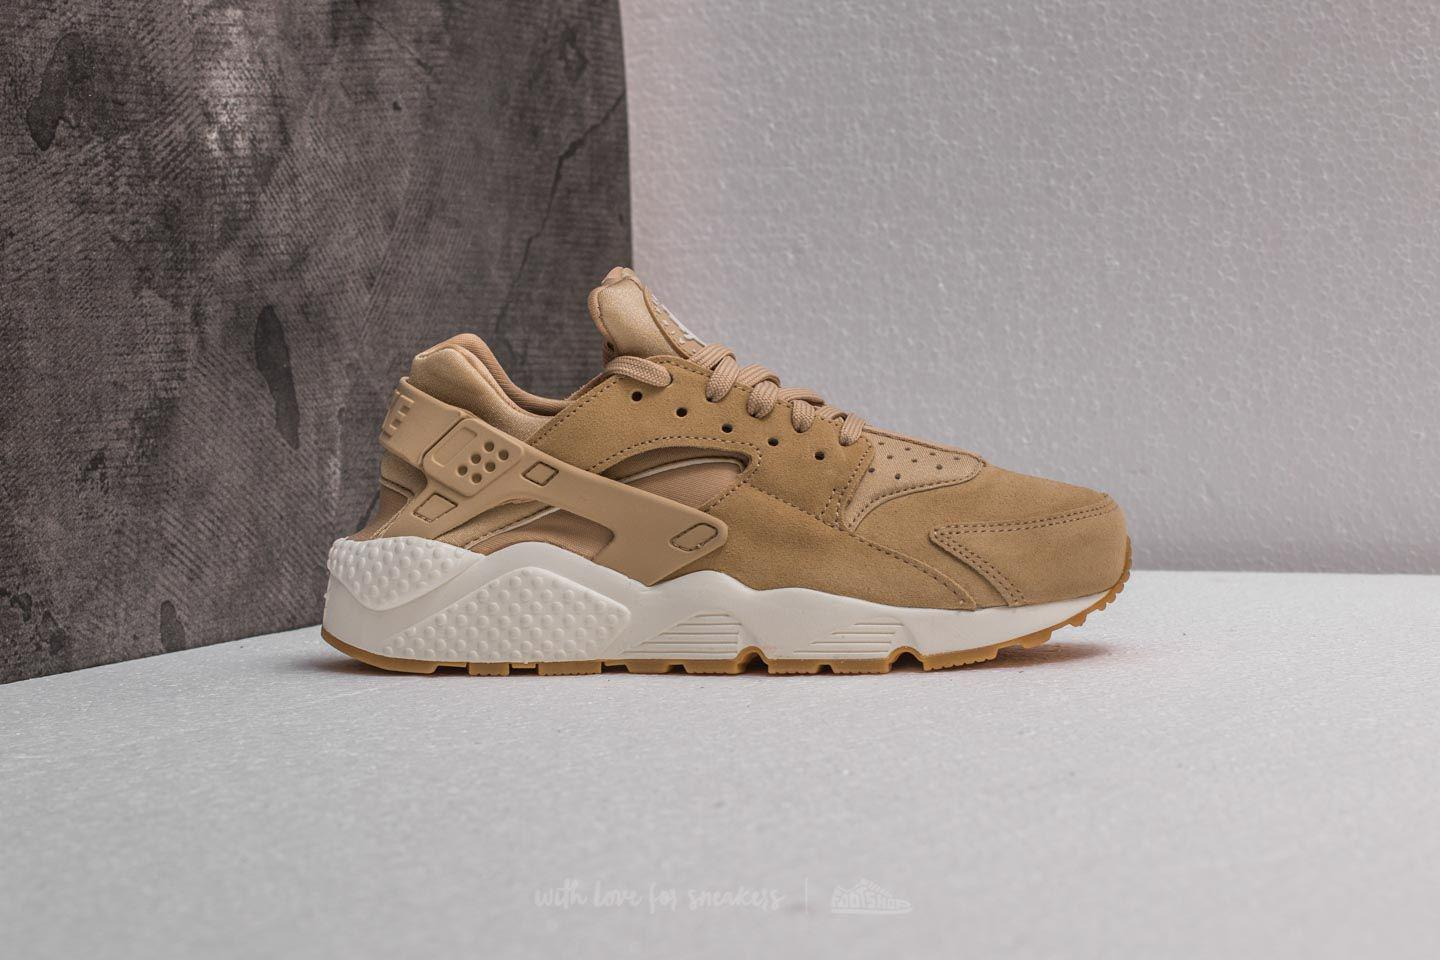 0c9671f9060d Gallery. Previously sold at  Footshop · Women s Nike Air Huarache